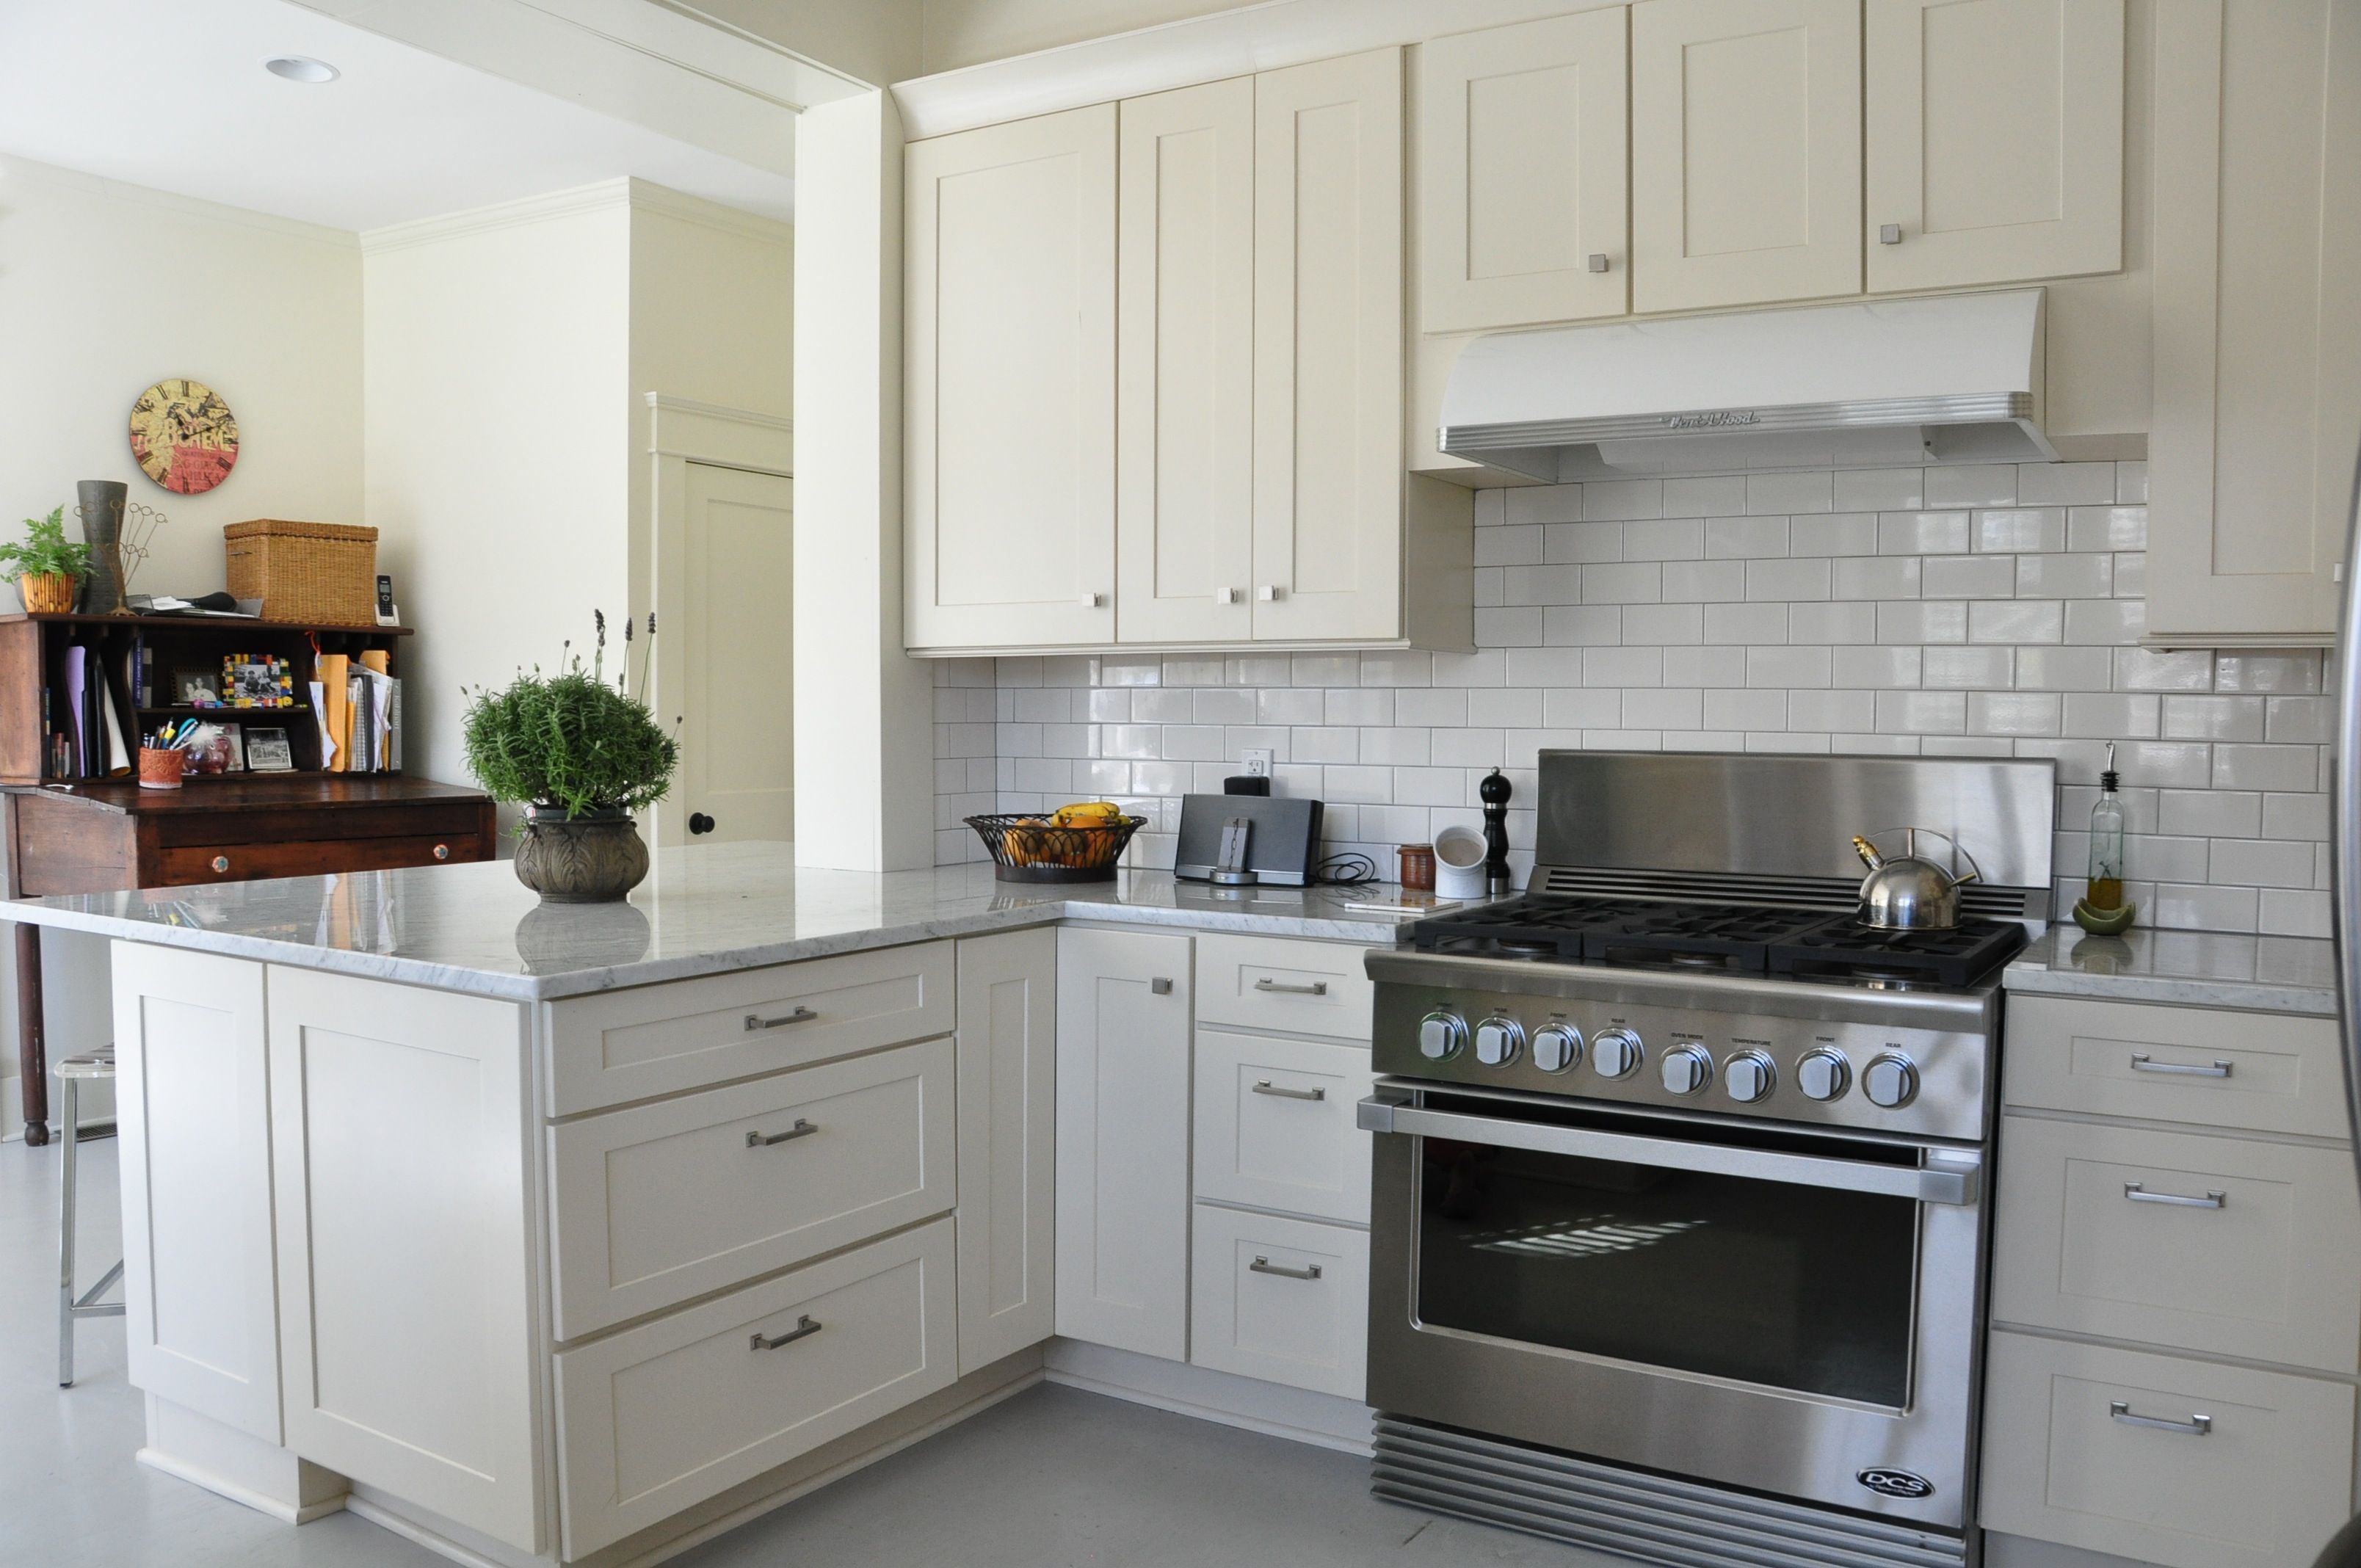 Classic kitchen with subway tile Kabinart cabinetry is